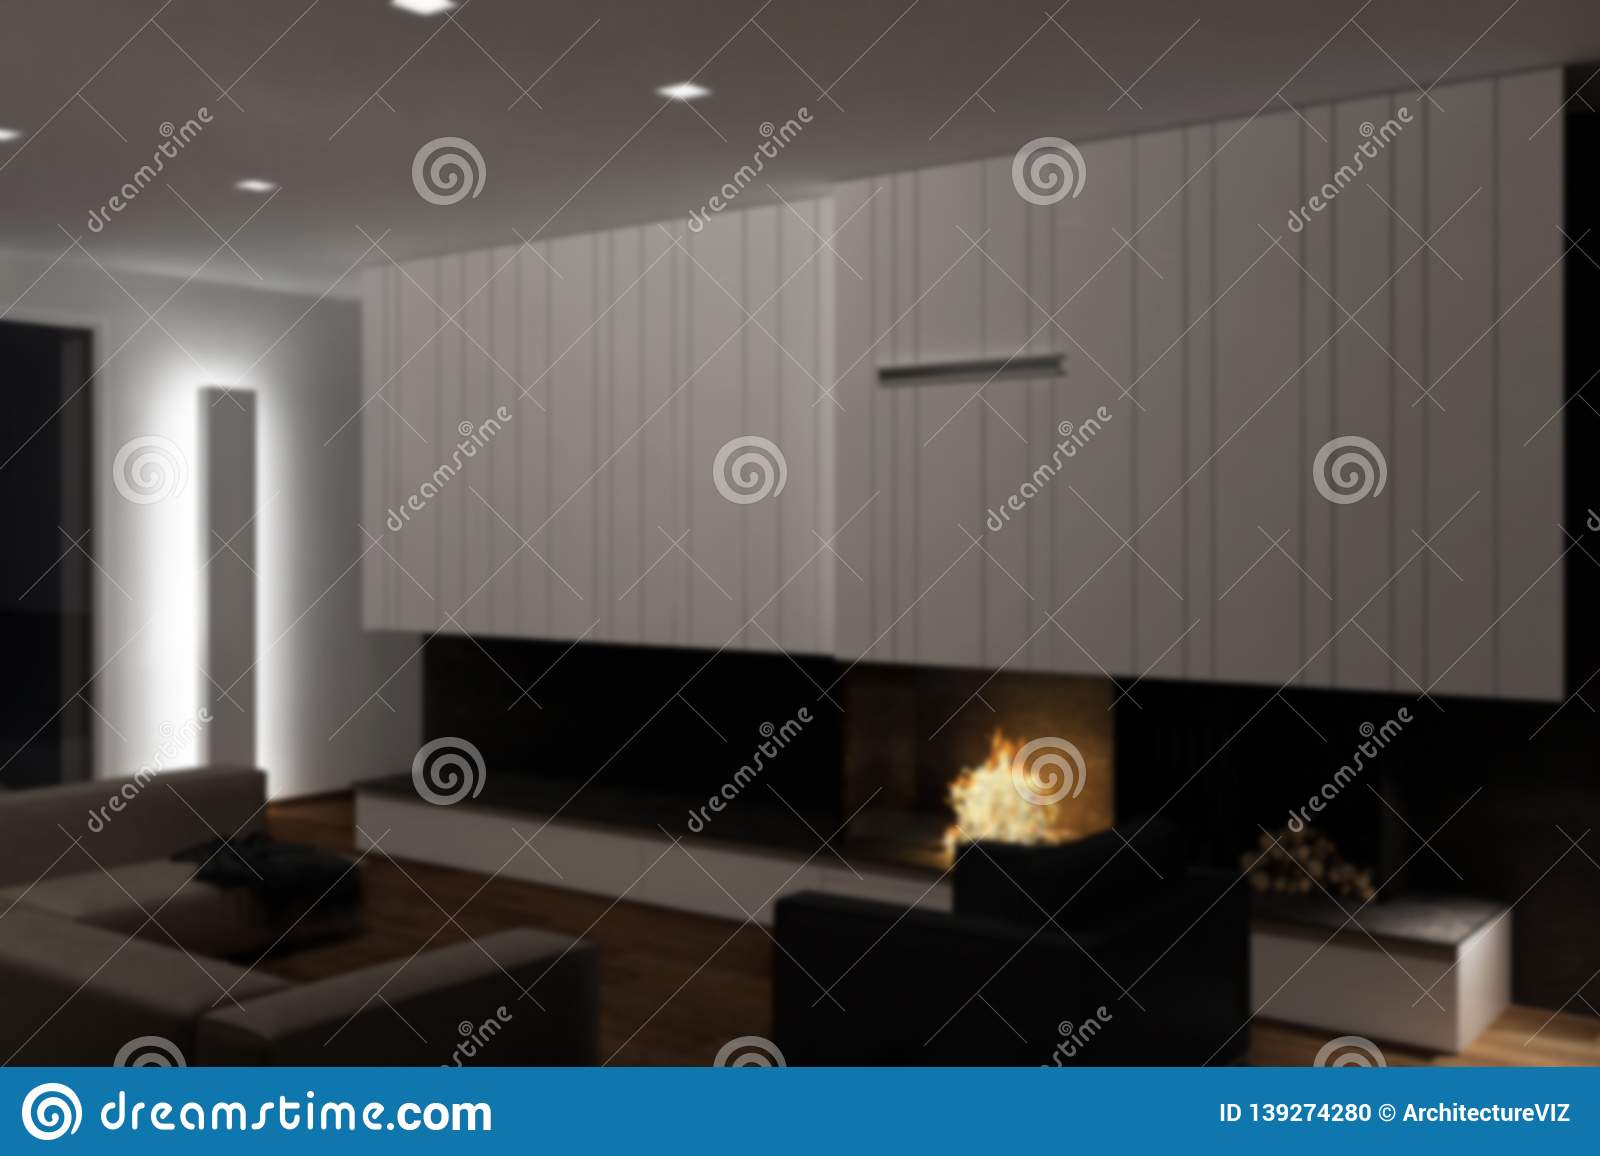 Blur background interior design, modern minimalist furniture with fireplace in contemporary living room with parquet floor, iron